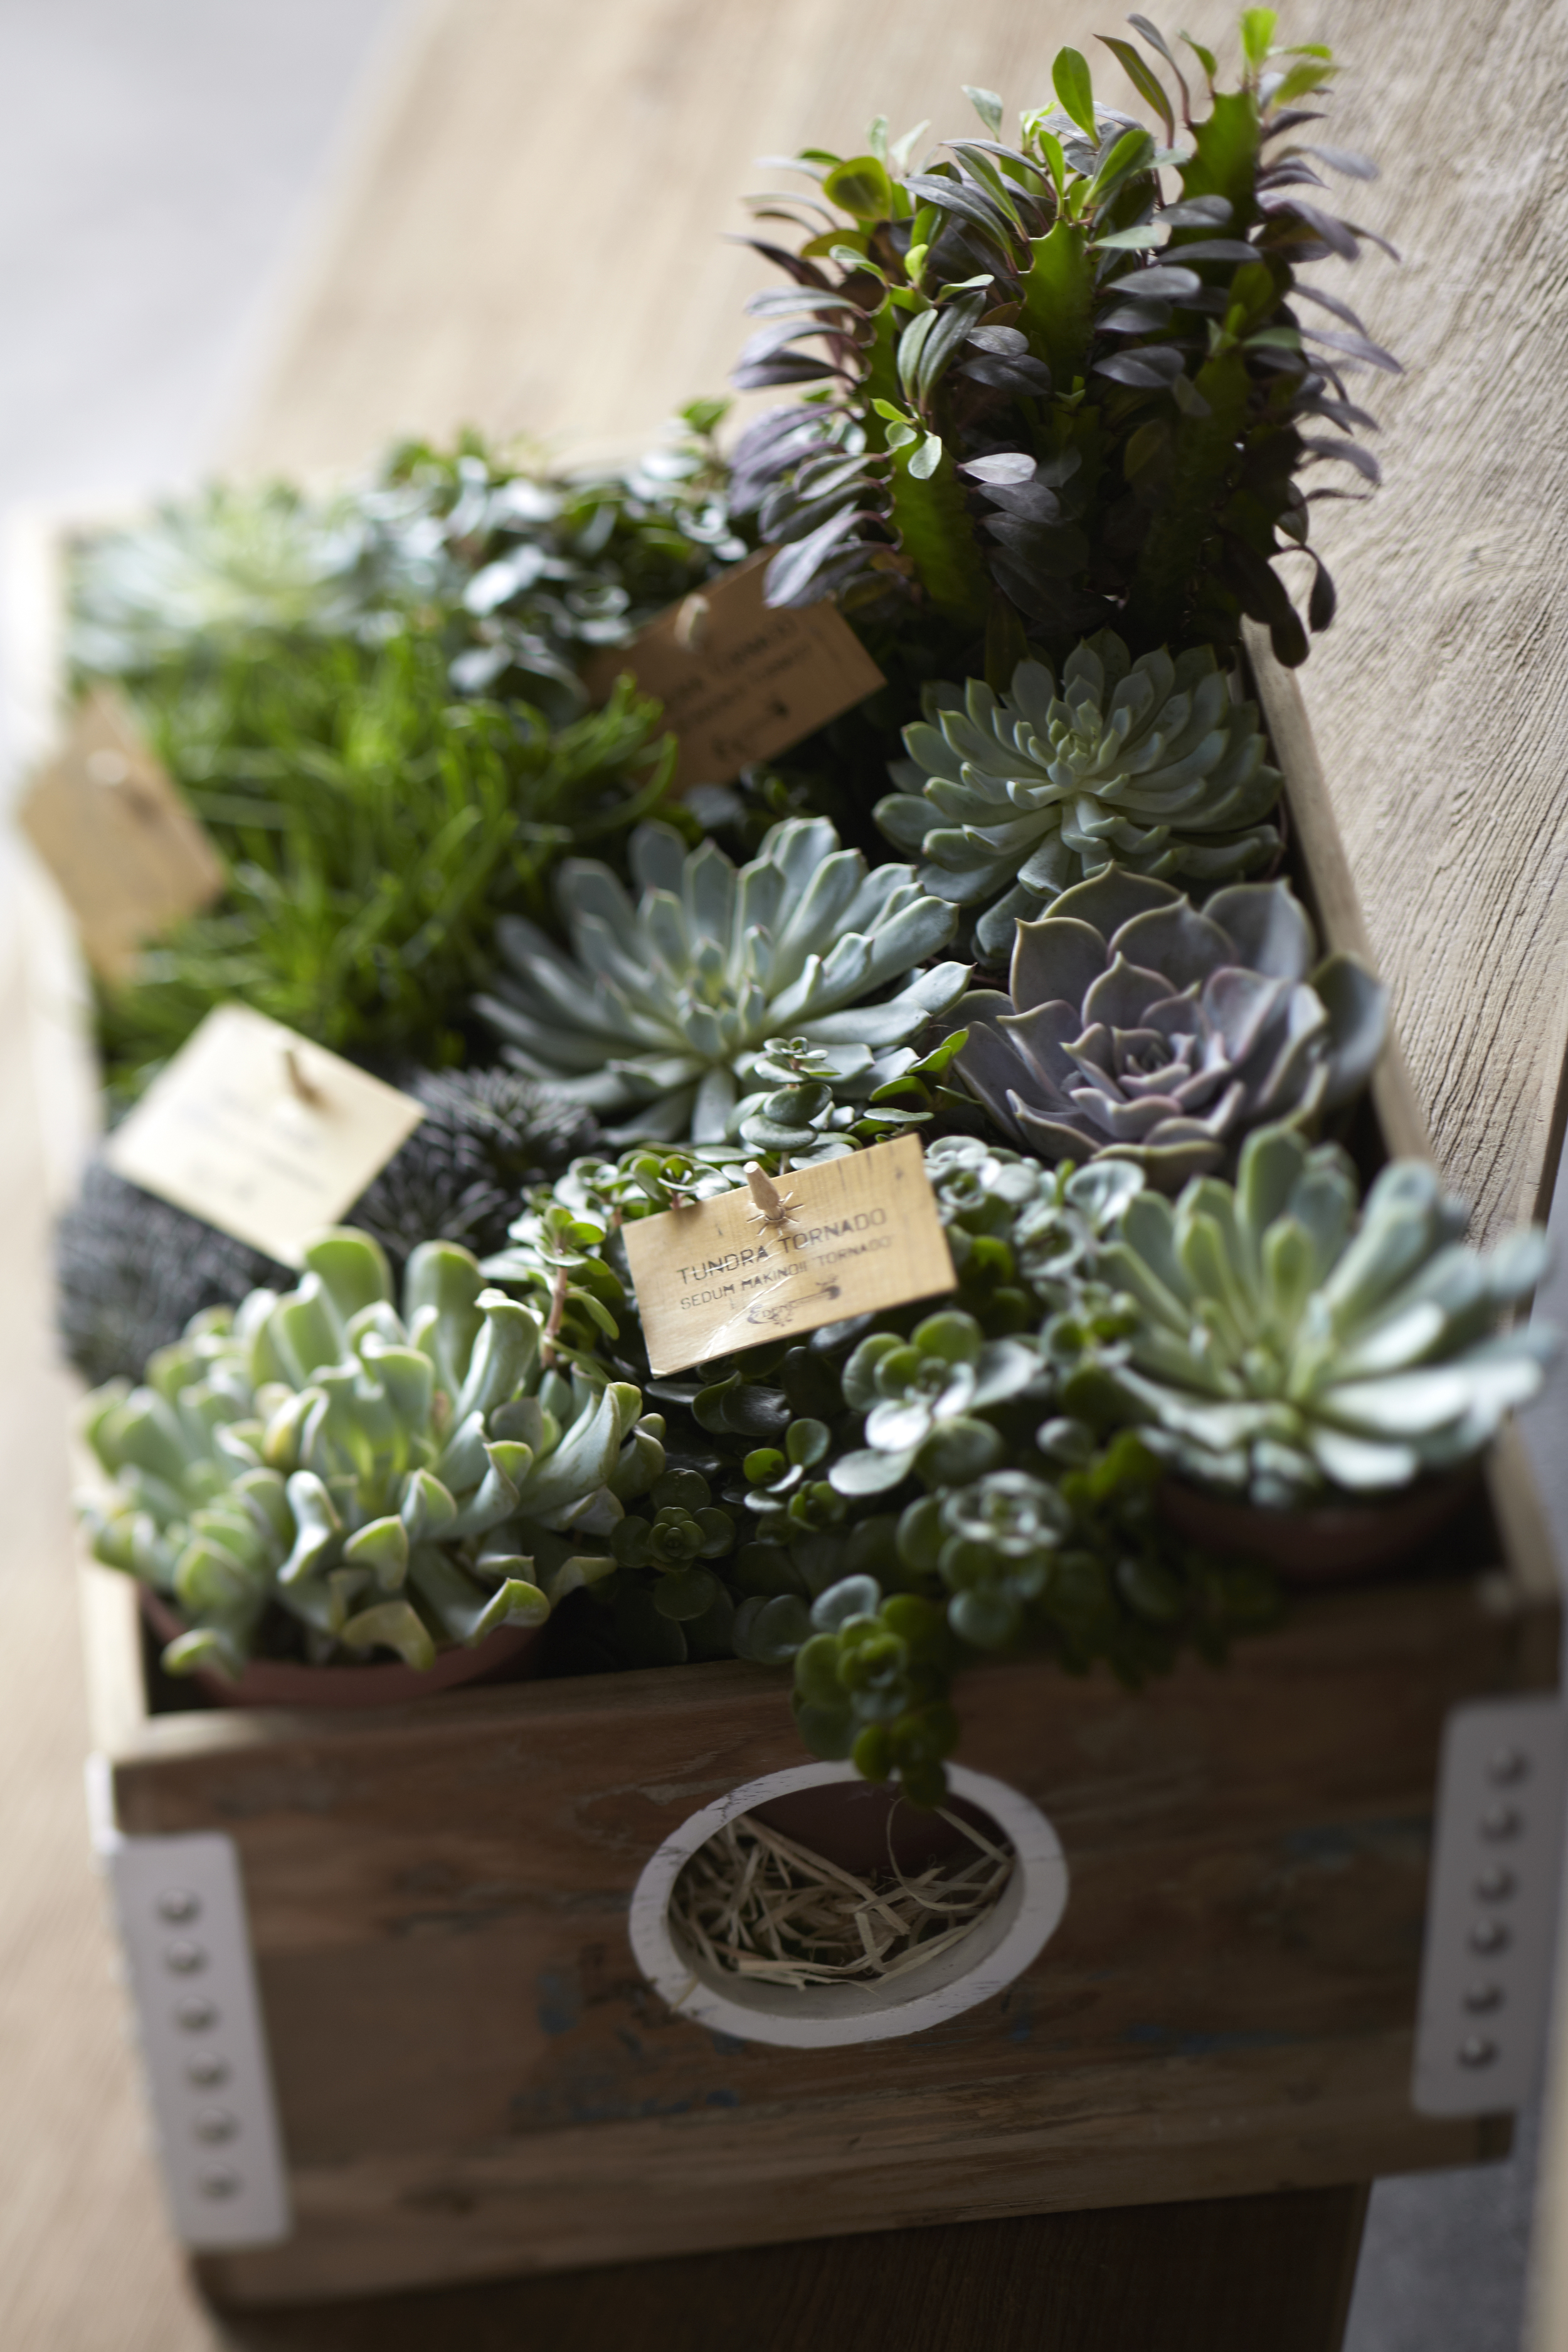 TREE flowers from the heart - potted plants planter box.jpg